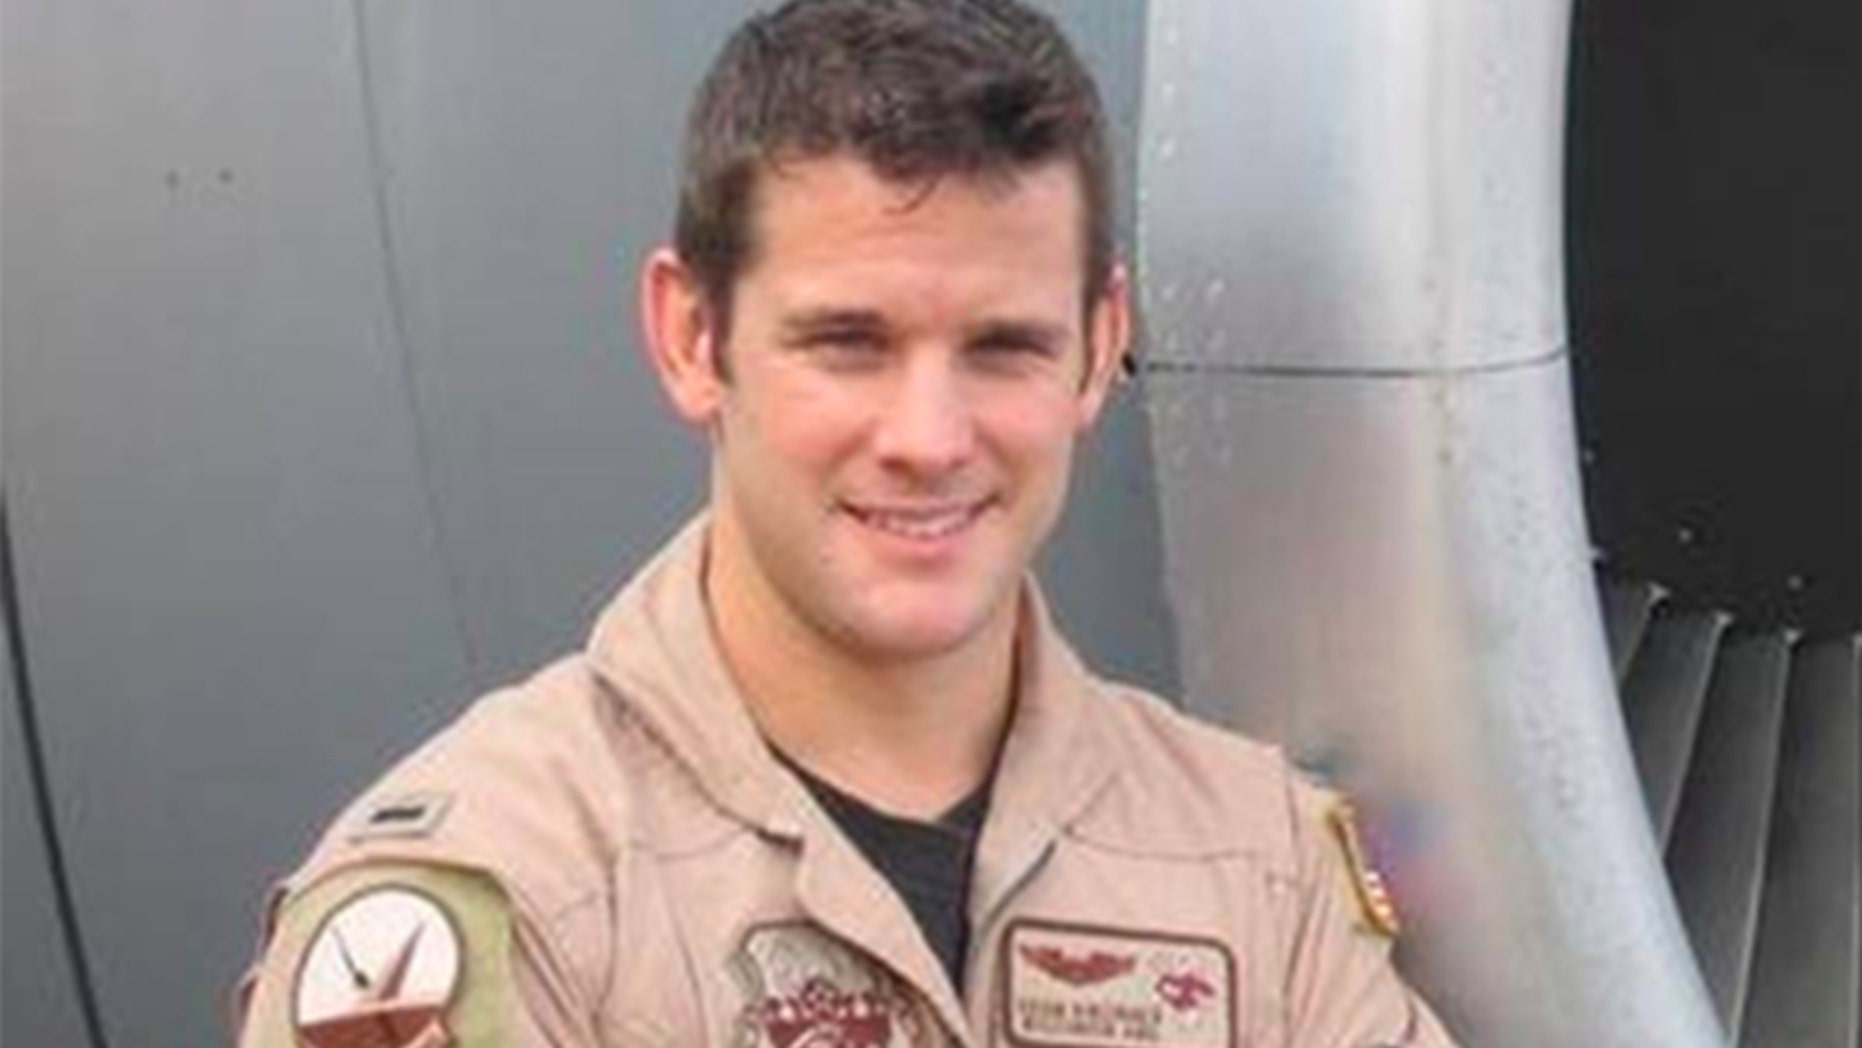 Rep. Adam Kinzinger was deployed to the U.S.-Mexico border with his Air National Guard unit, according to his spokeswoman.